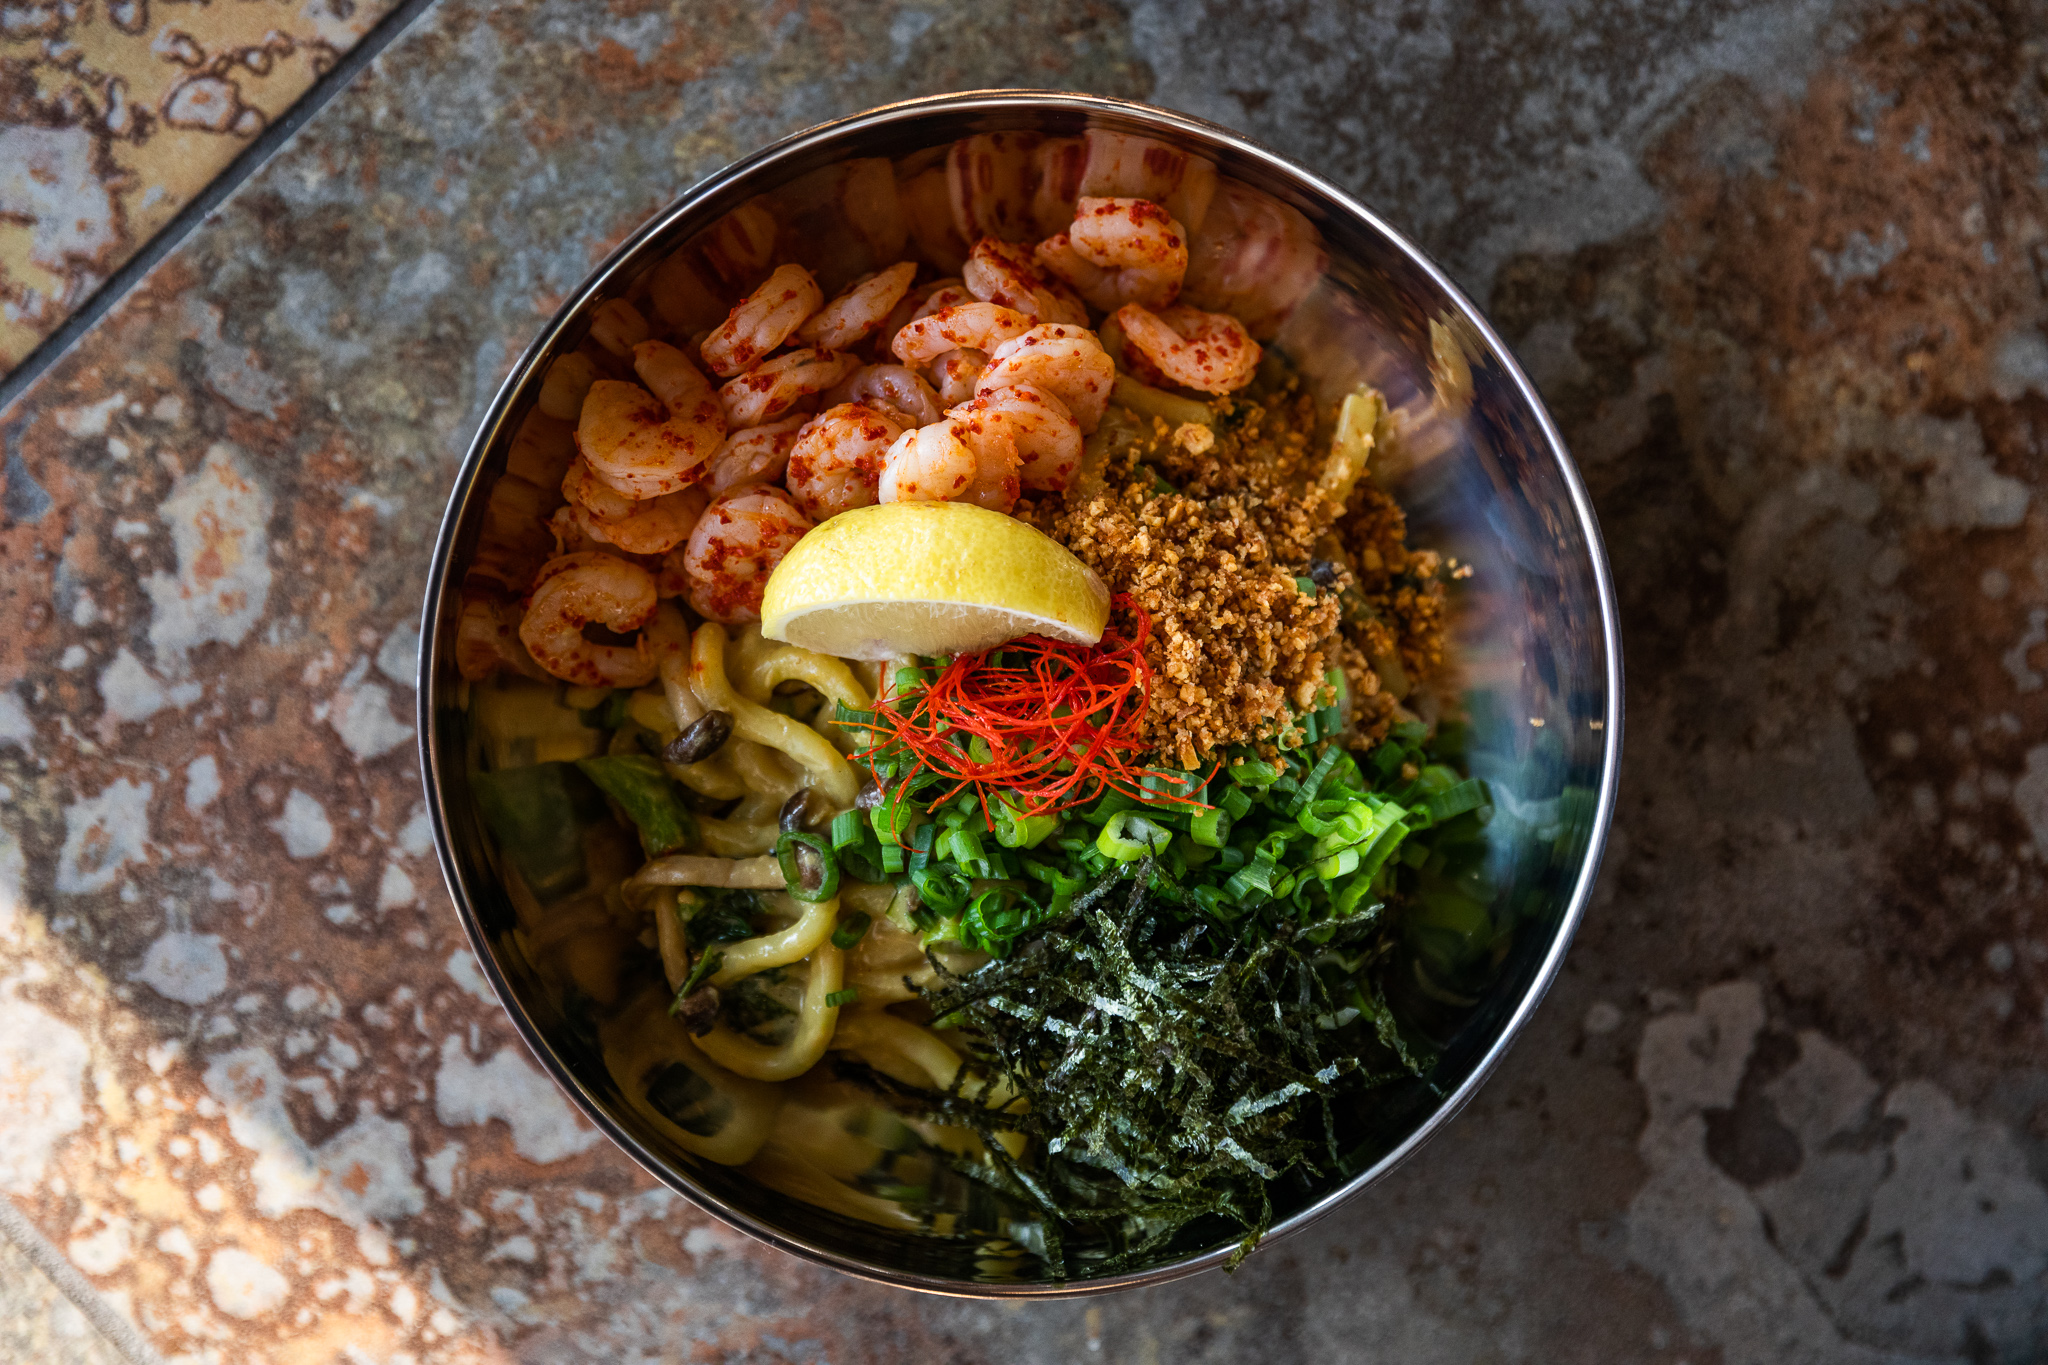 Butter udon noodles with poach shrimp, a lemon wedge, and herbs in a metal bowl.